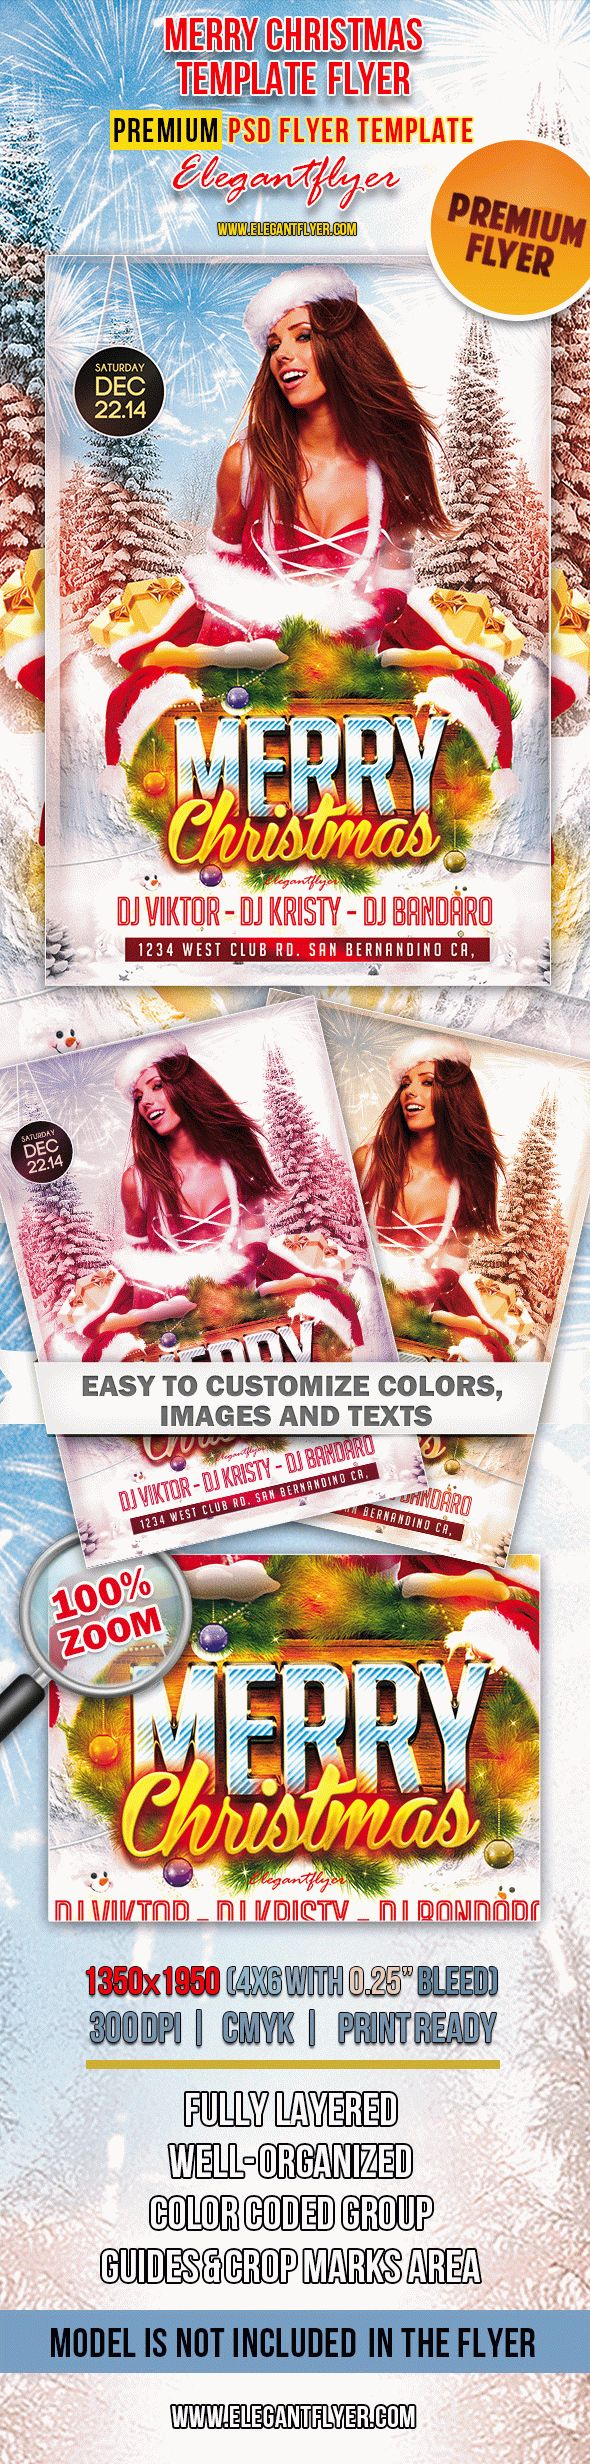 Merry Christmas – Premium Club flyer PSD Template